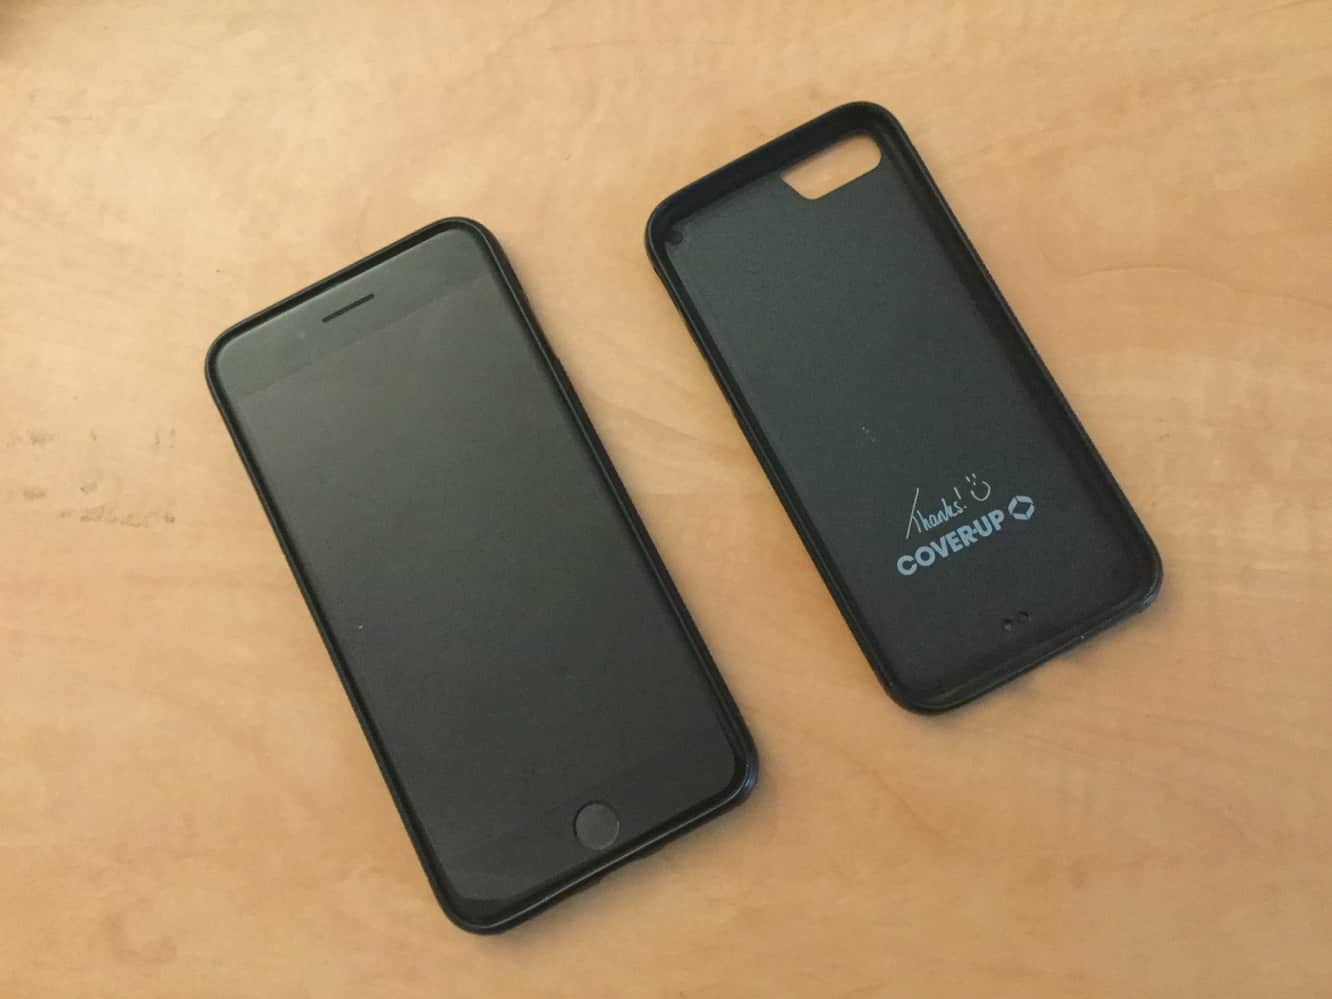 Cover-Up Stone Explorer for iPhone 7 and iPhone 7 Plus